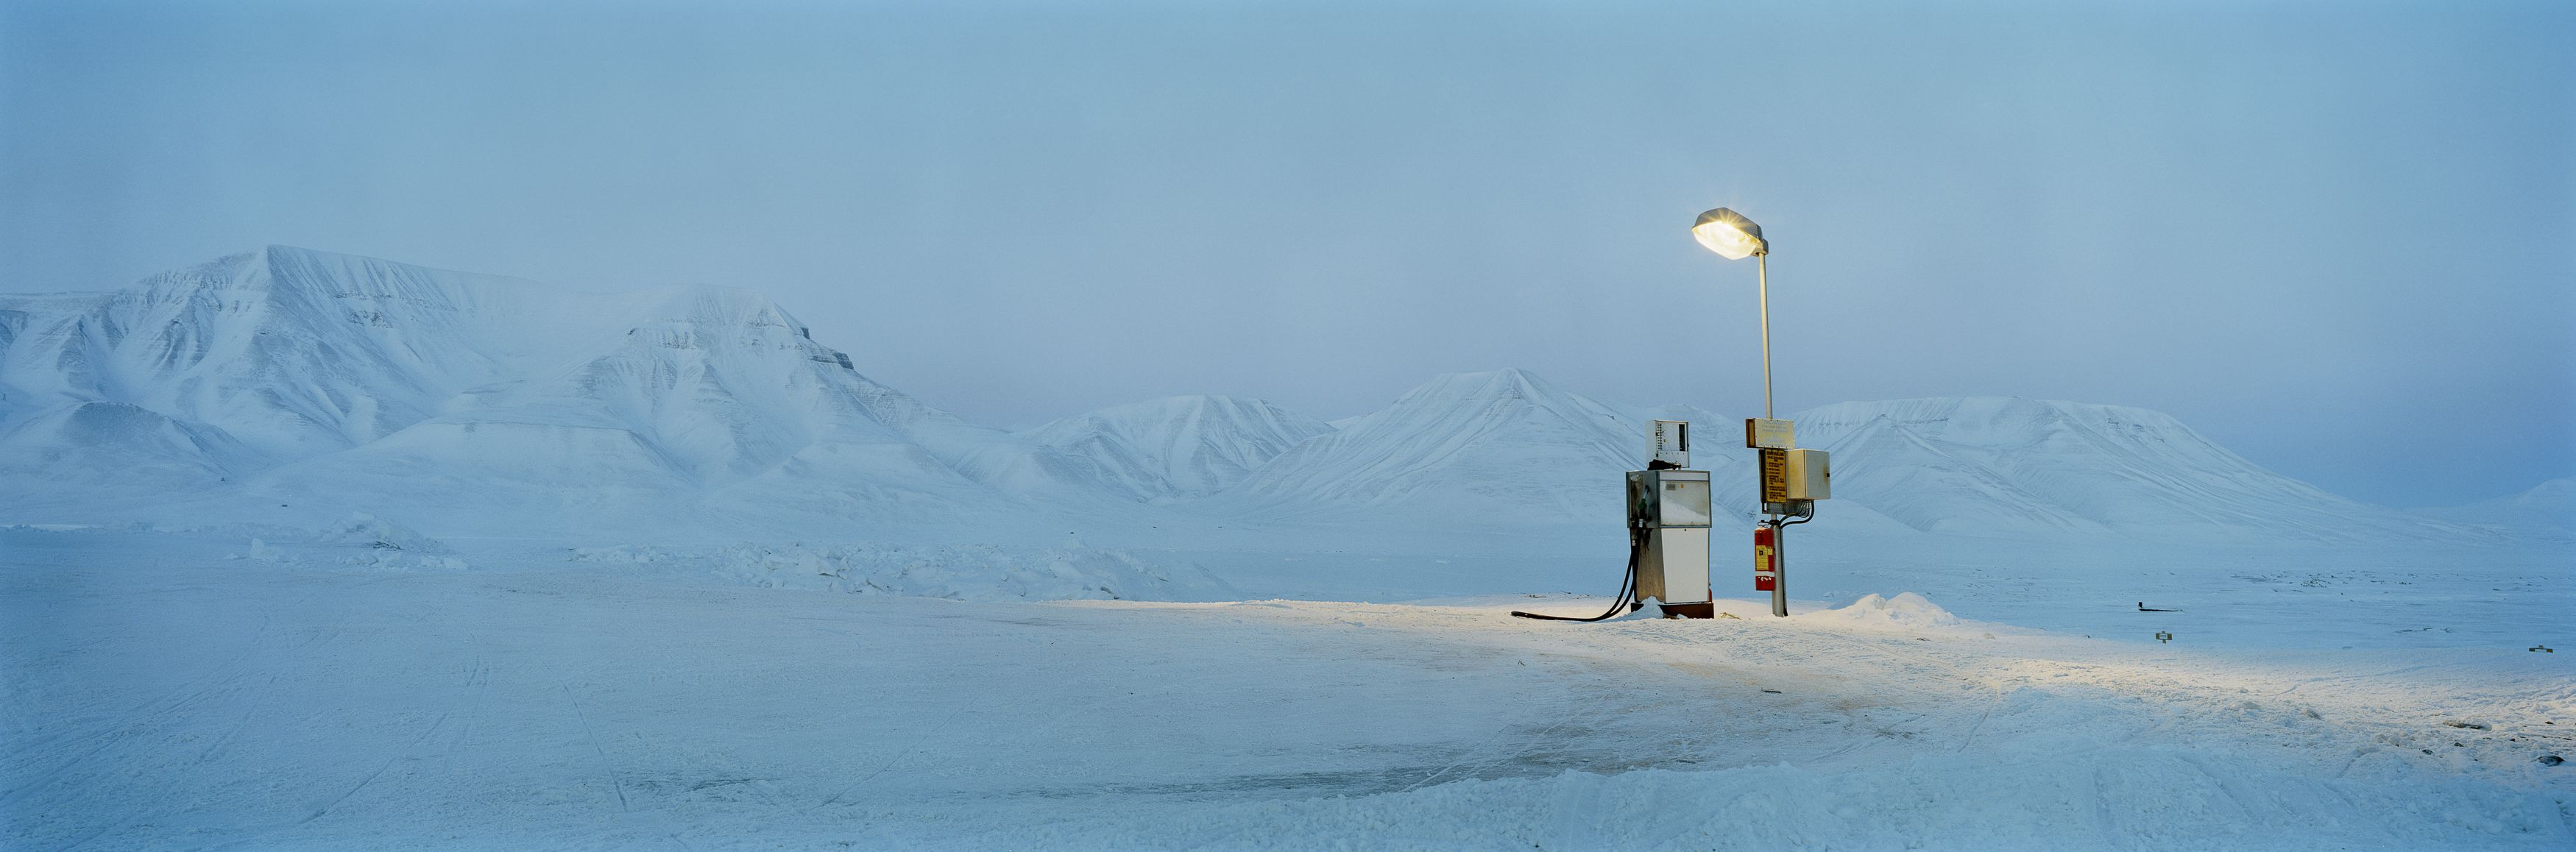 Gasoline Pump in Moonlight, Barentsburg, Spitsbergen,Christian Houge,Photography